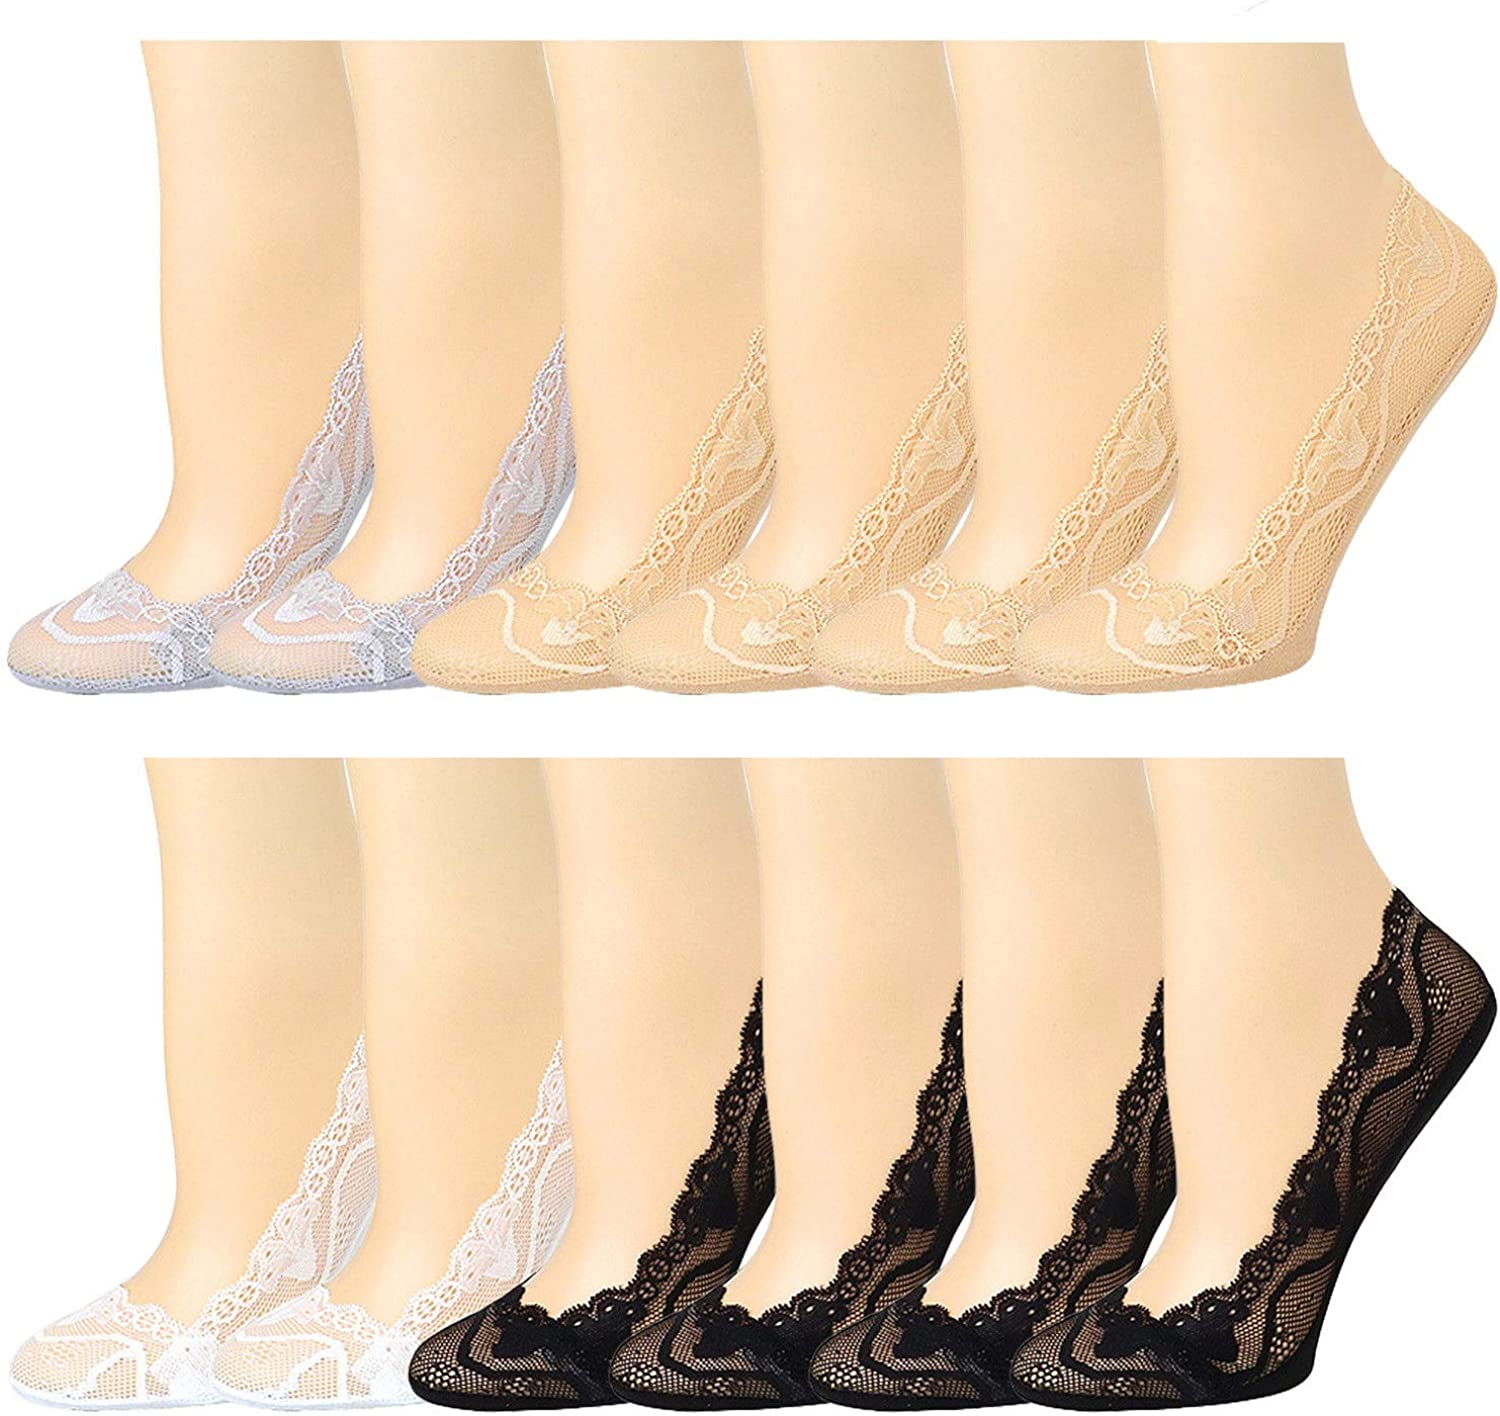 12 Pairs Women's Lace No Show Liners Socks Silicone Grip Non-Skid Boat Socks